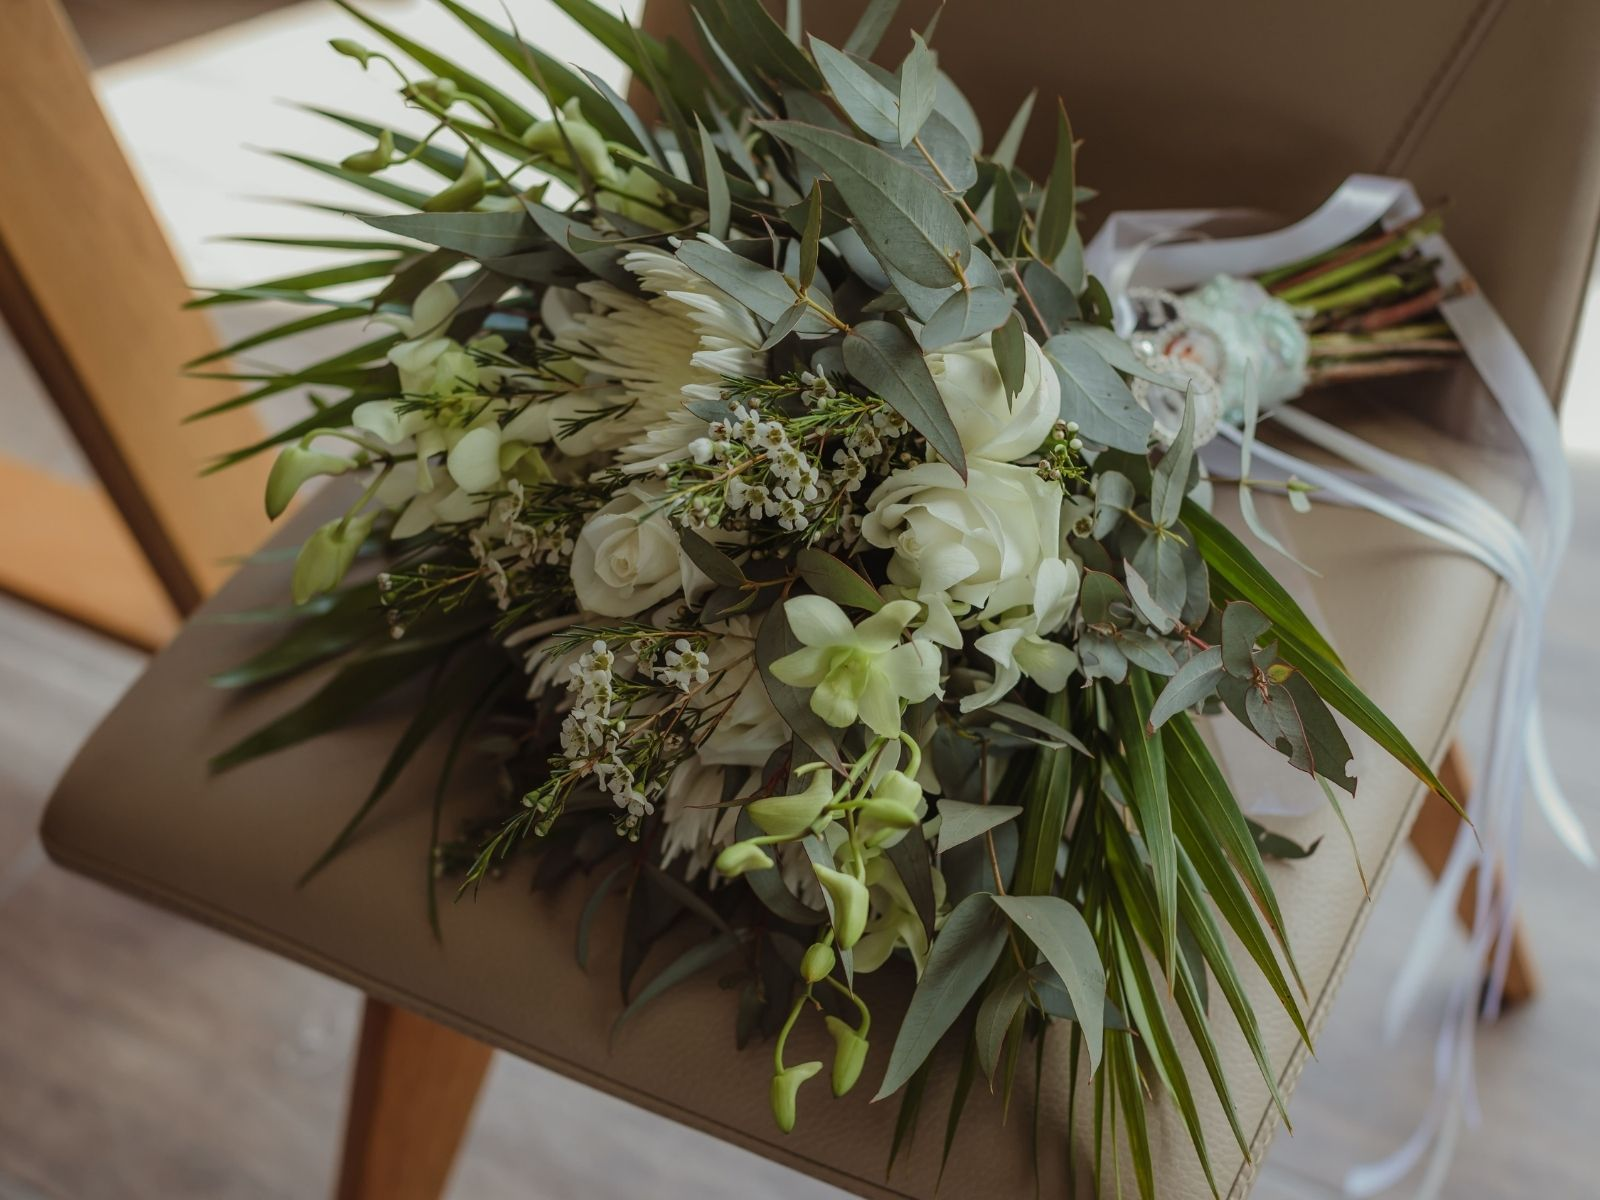 Bouquet of flowers on a chair